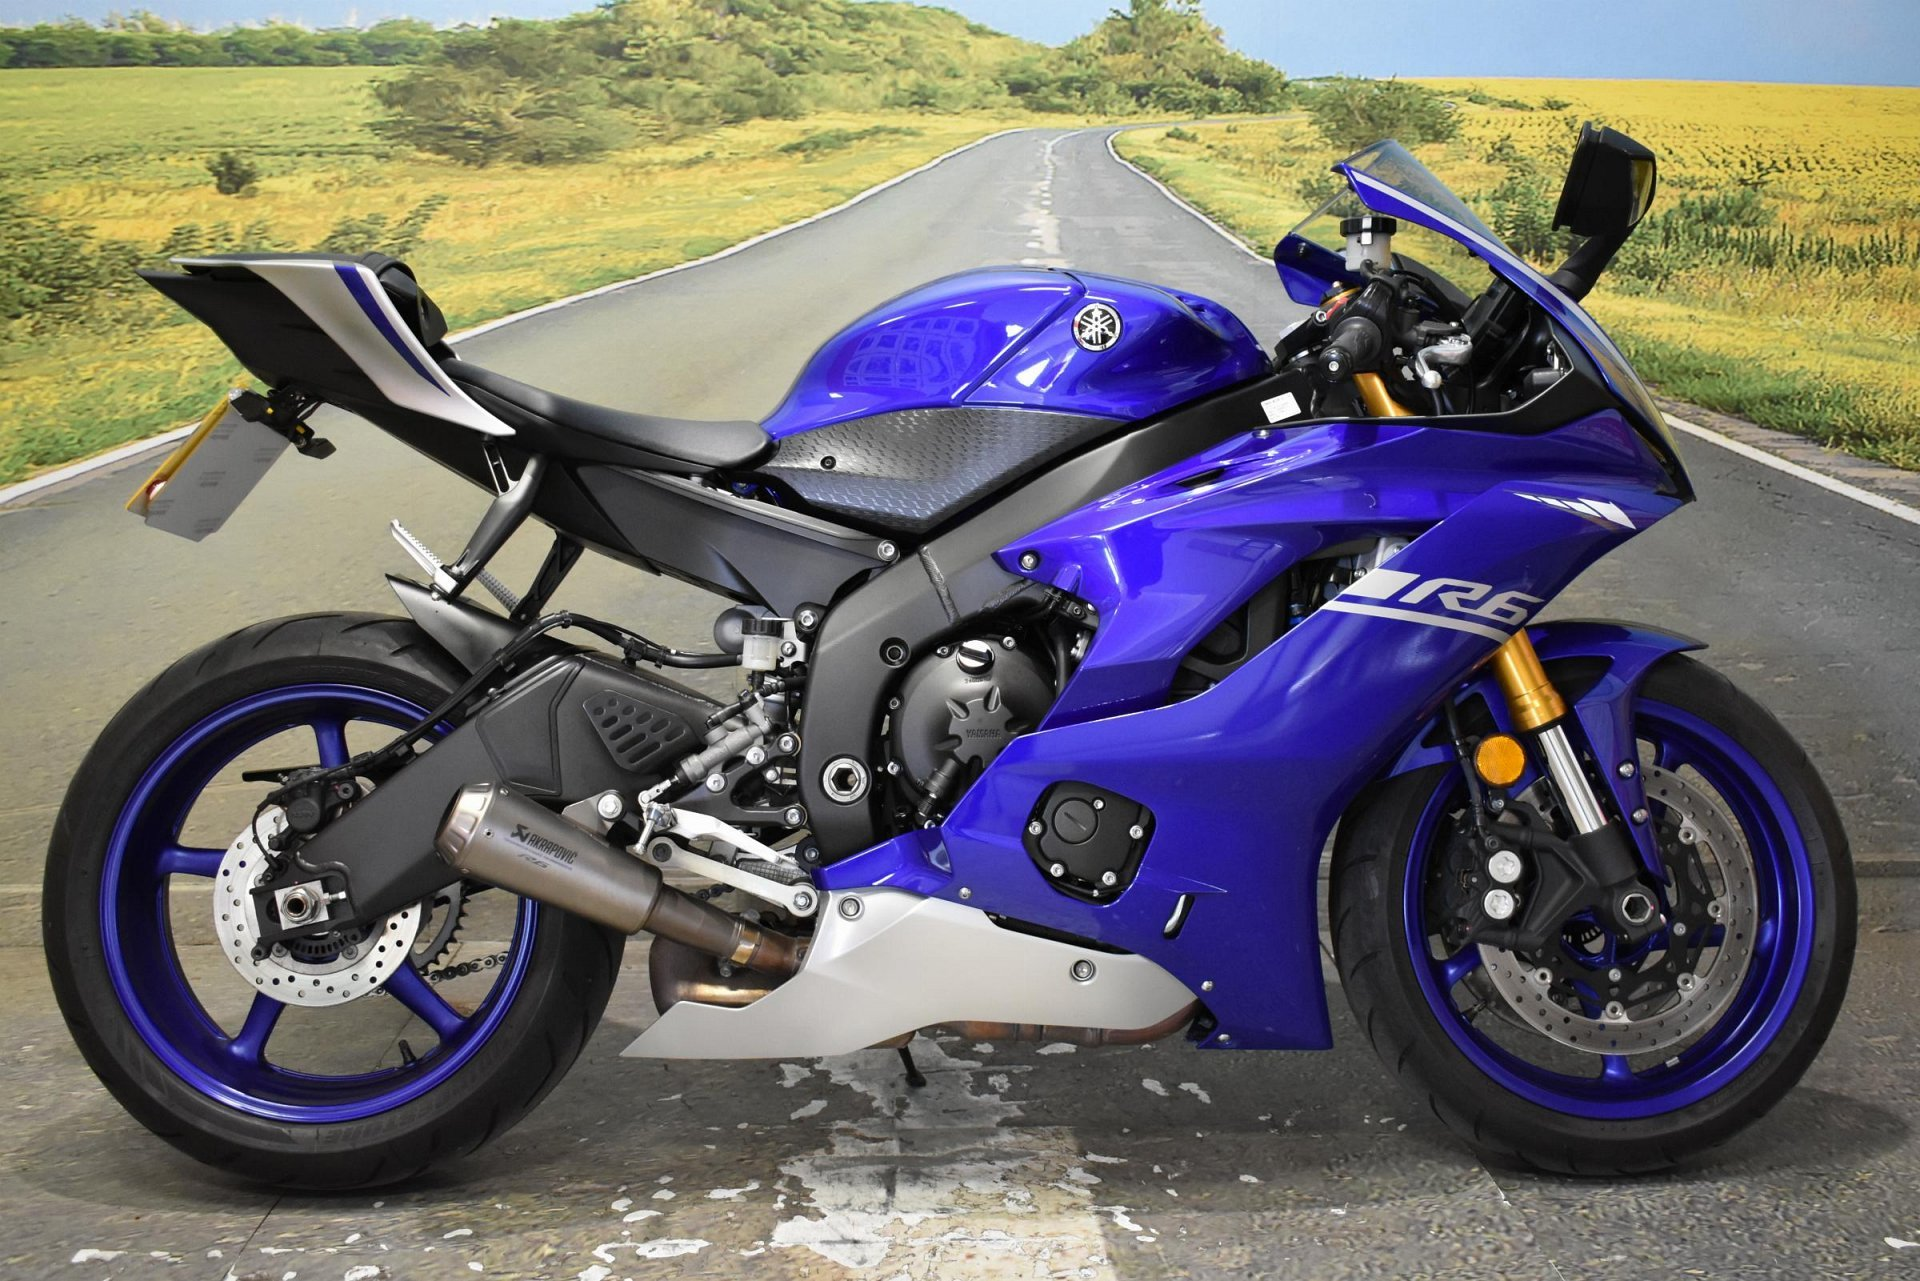 2017 Yamaha R6 for sale in Derbyshire